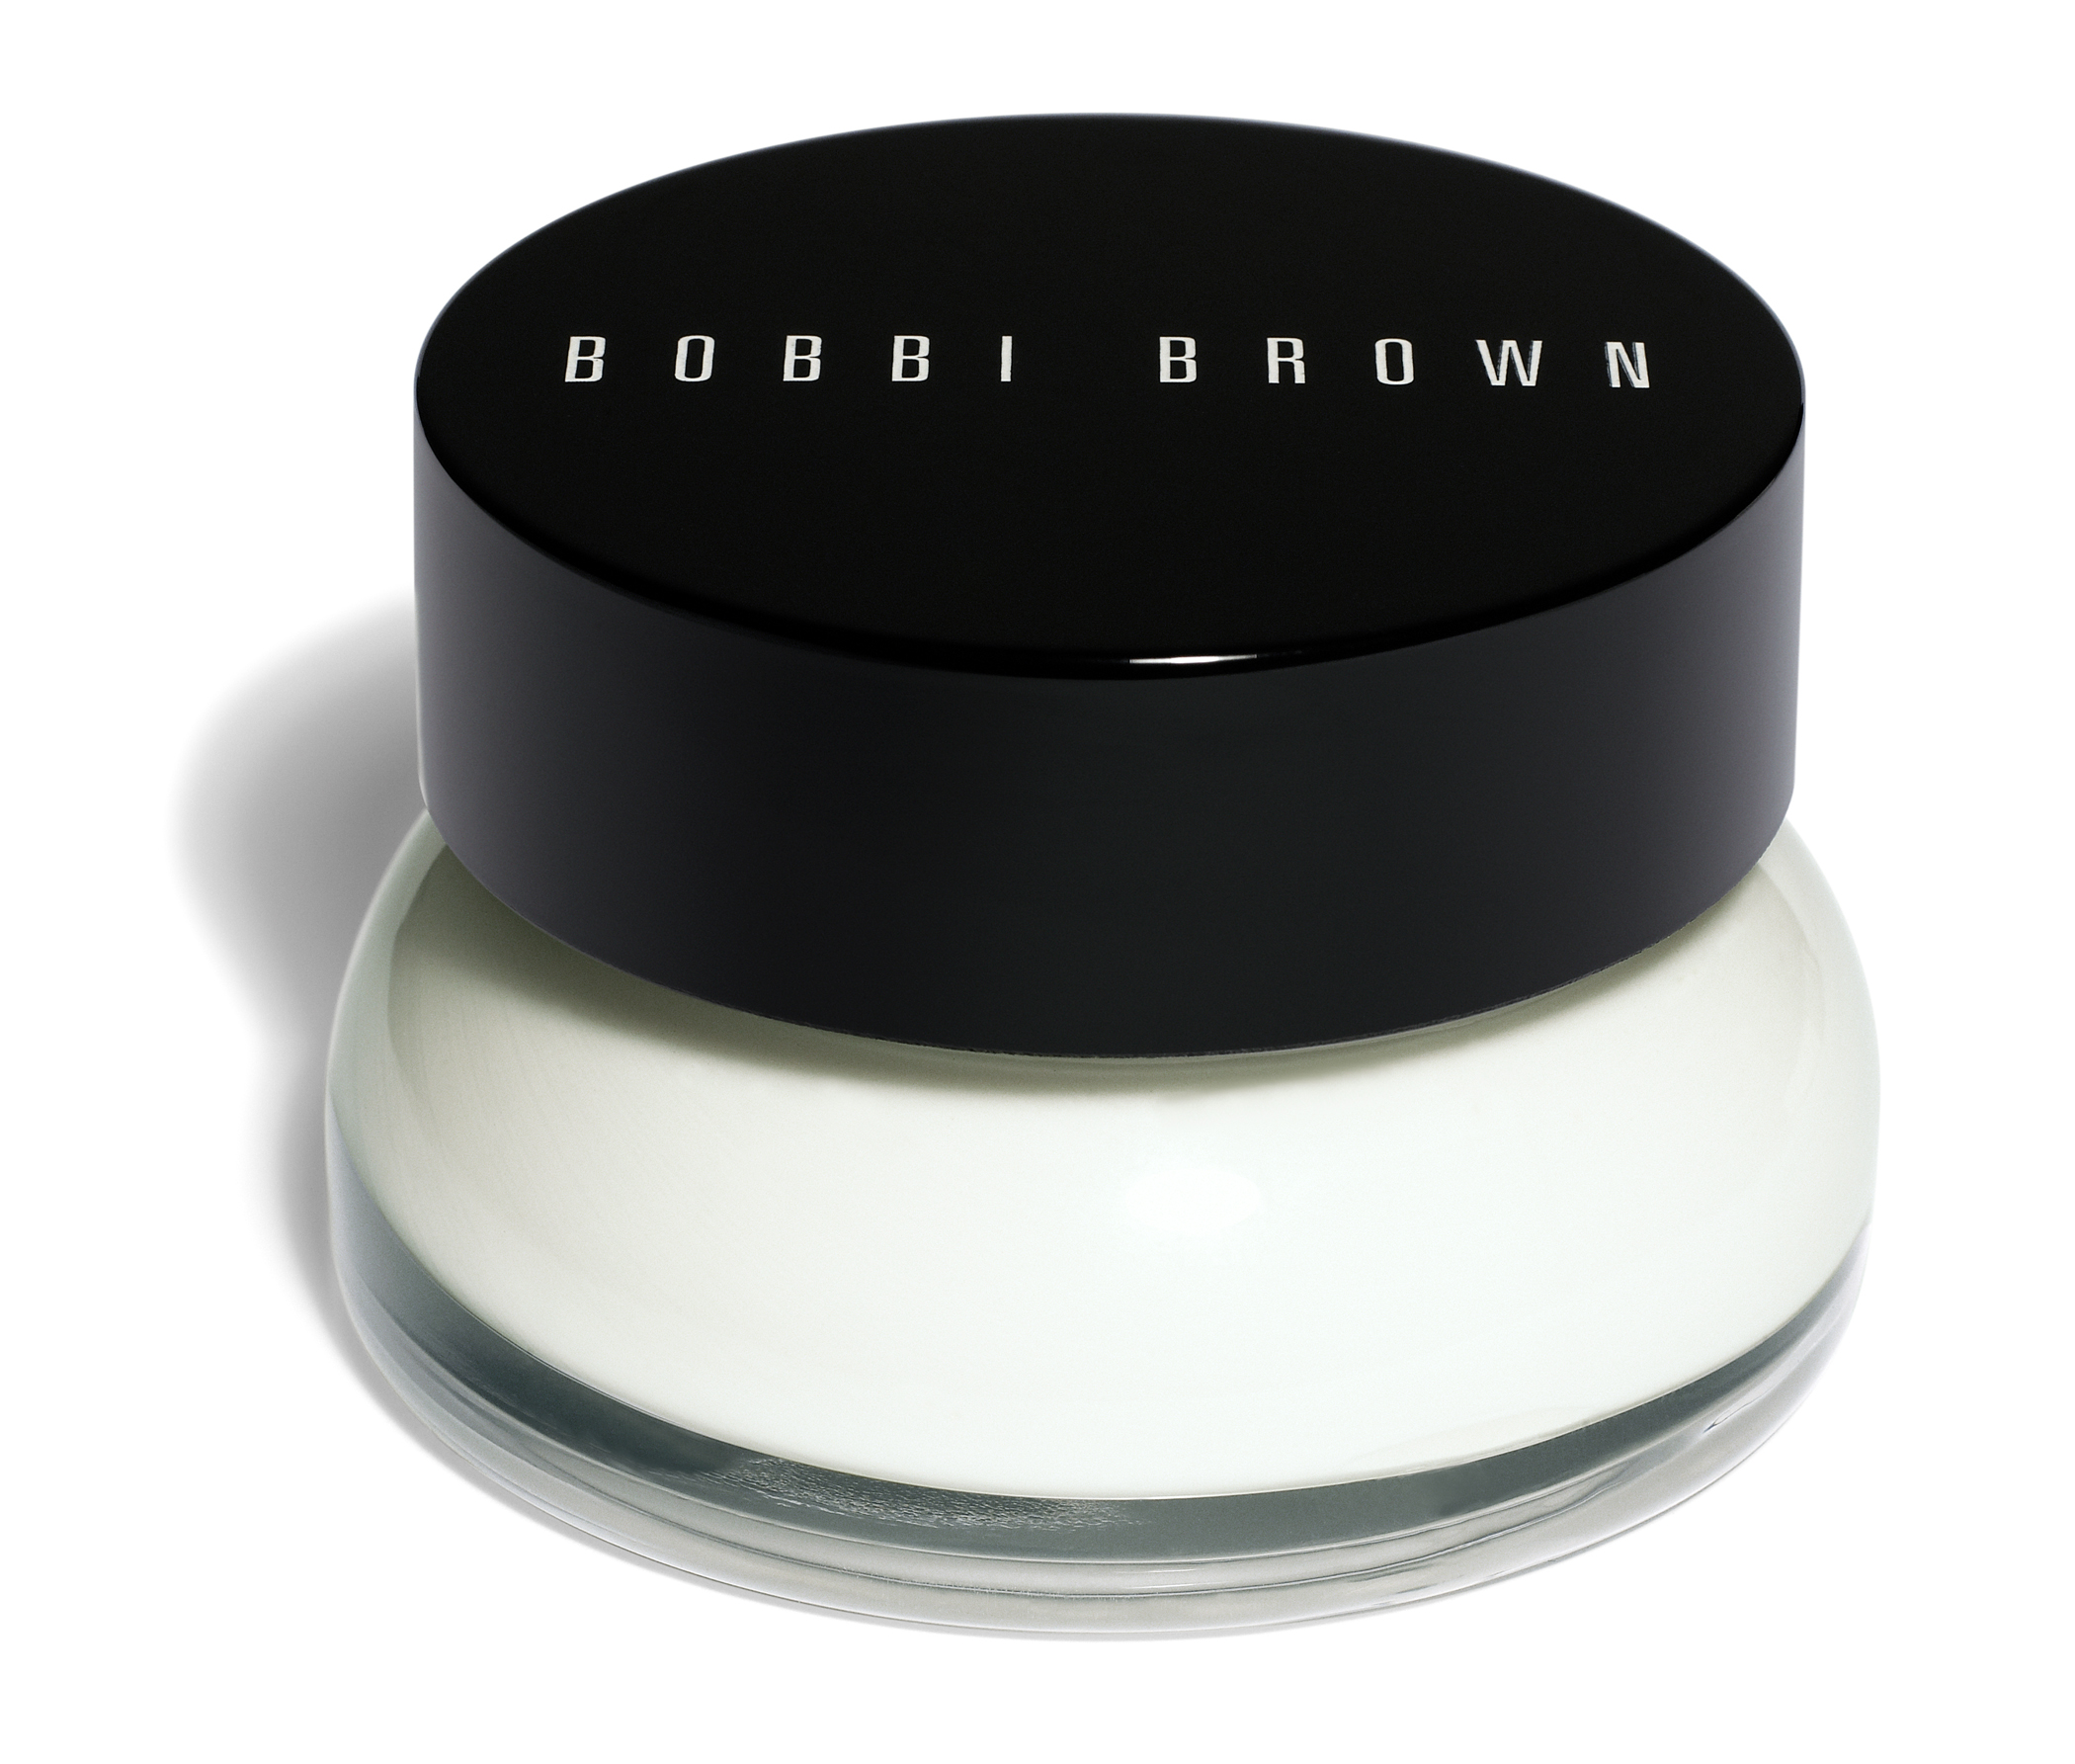 New Extra Repair Moisture Cream from Bobbi Brown